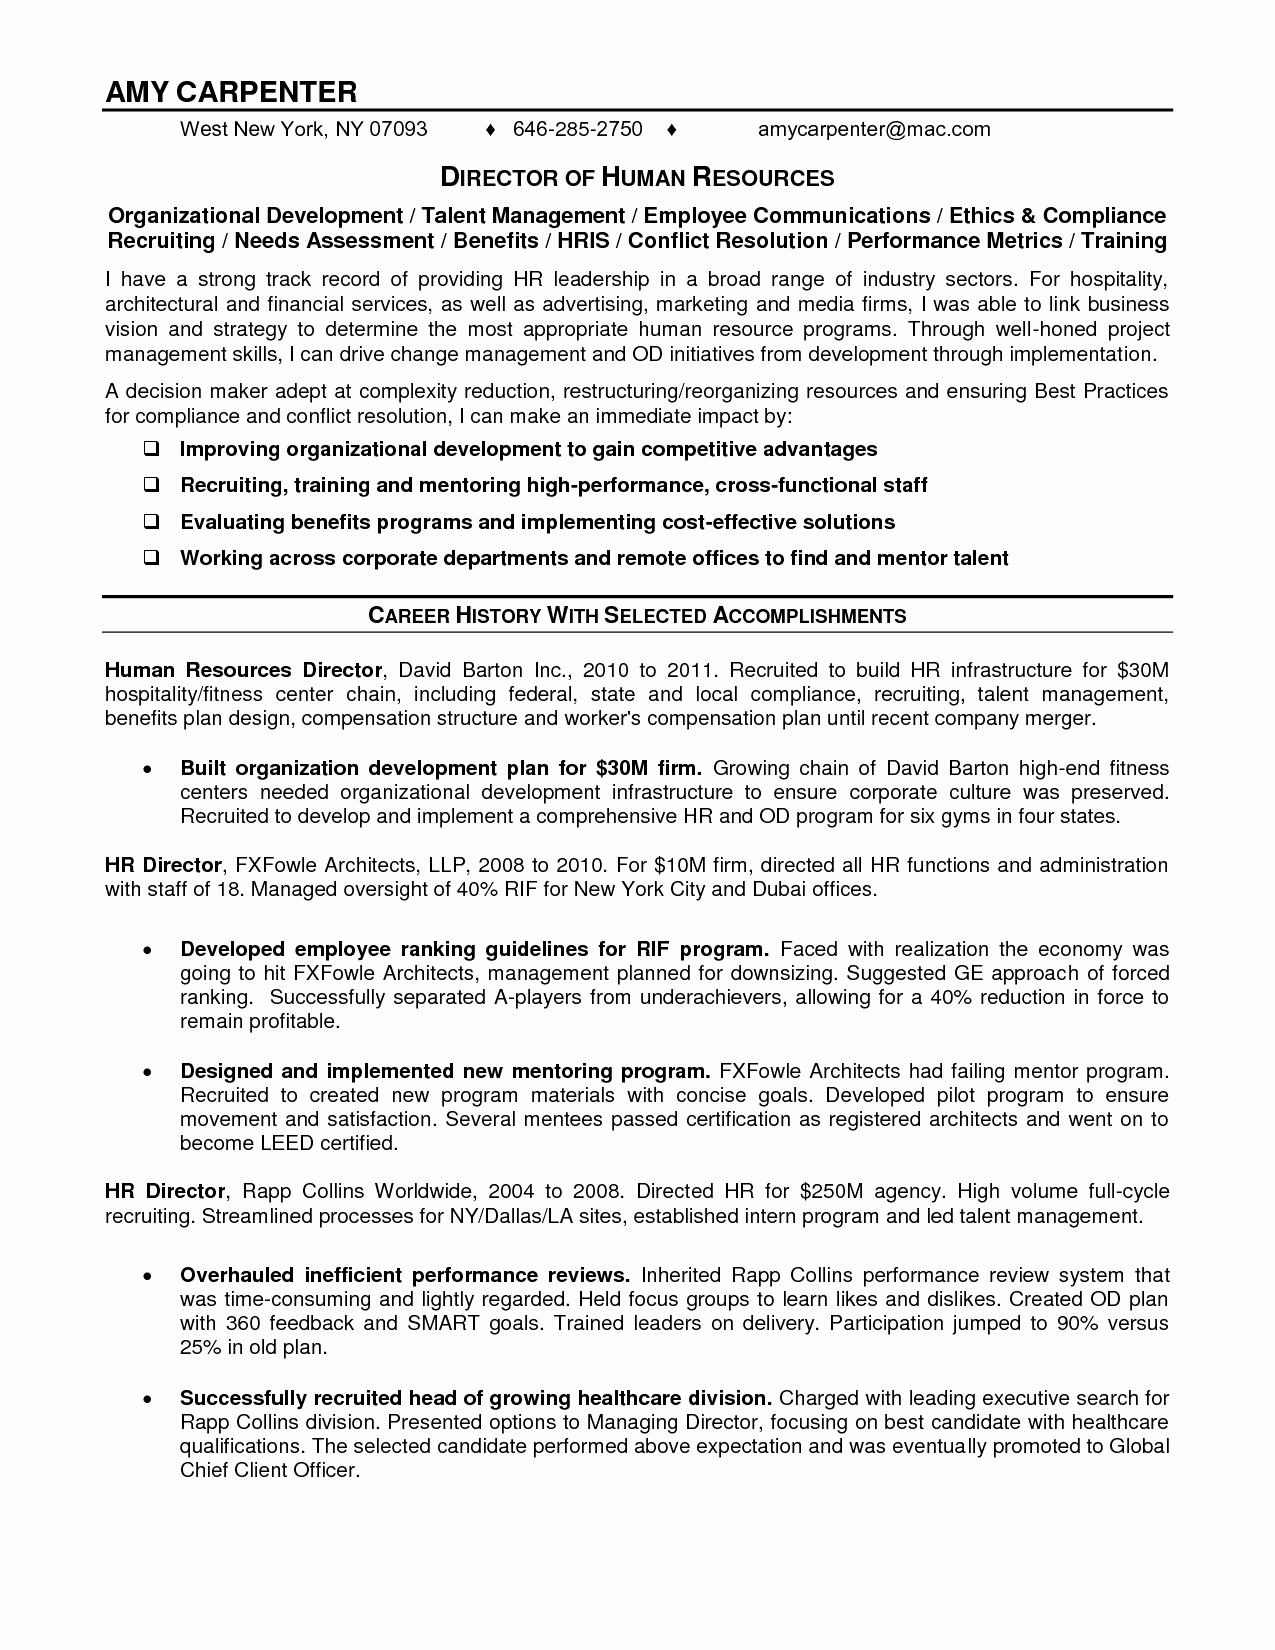 Pdf Cover Letter Template - 60 Day Notice to Vacate Template Inspirational Pilot Cover Letter